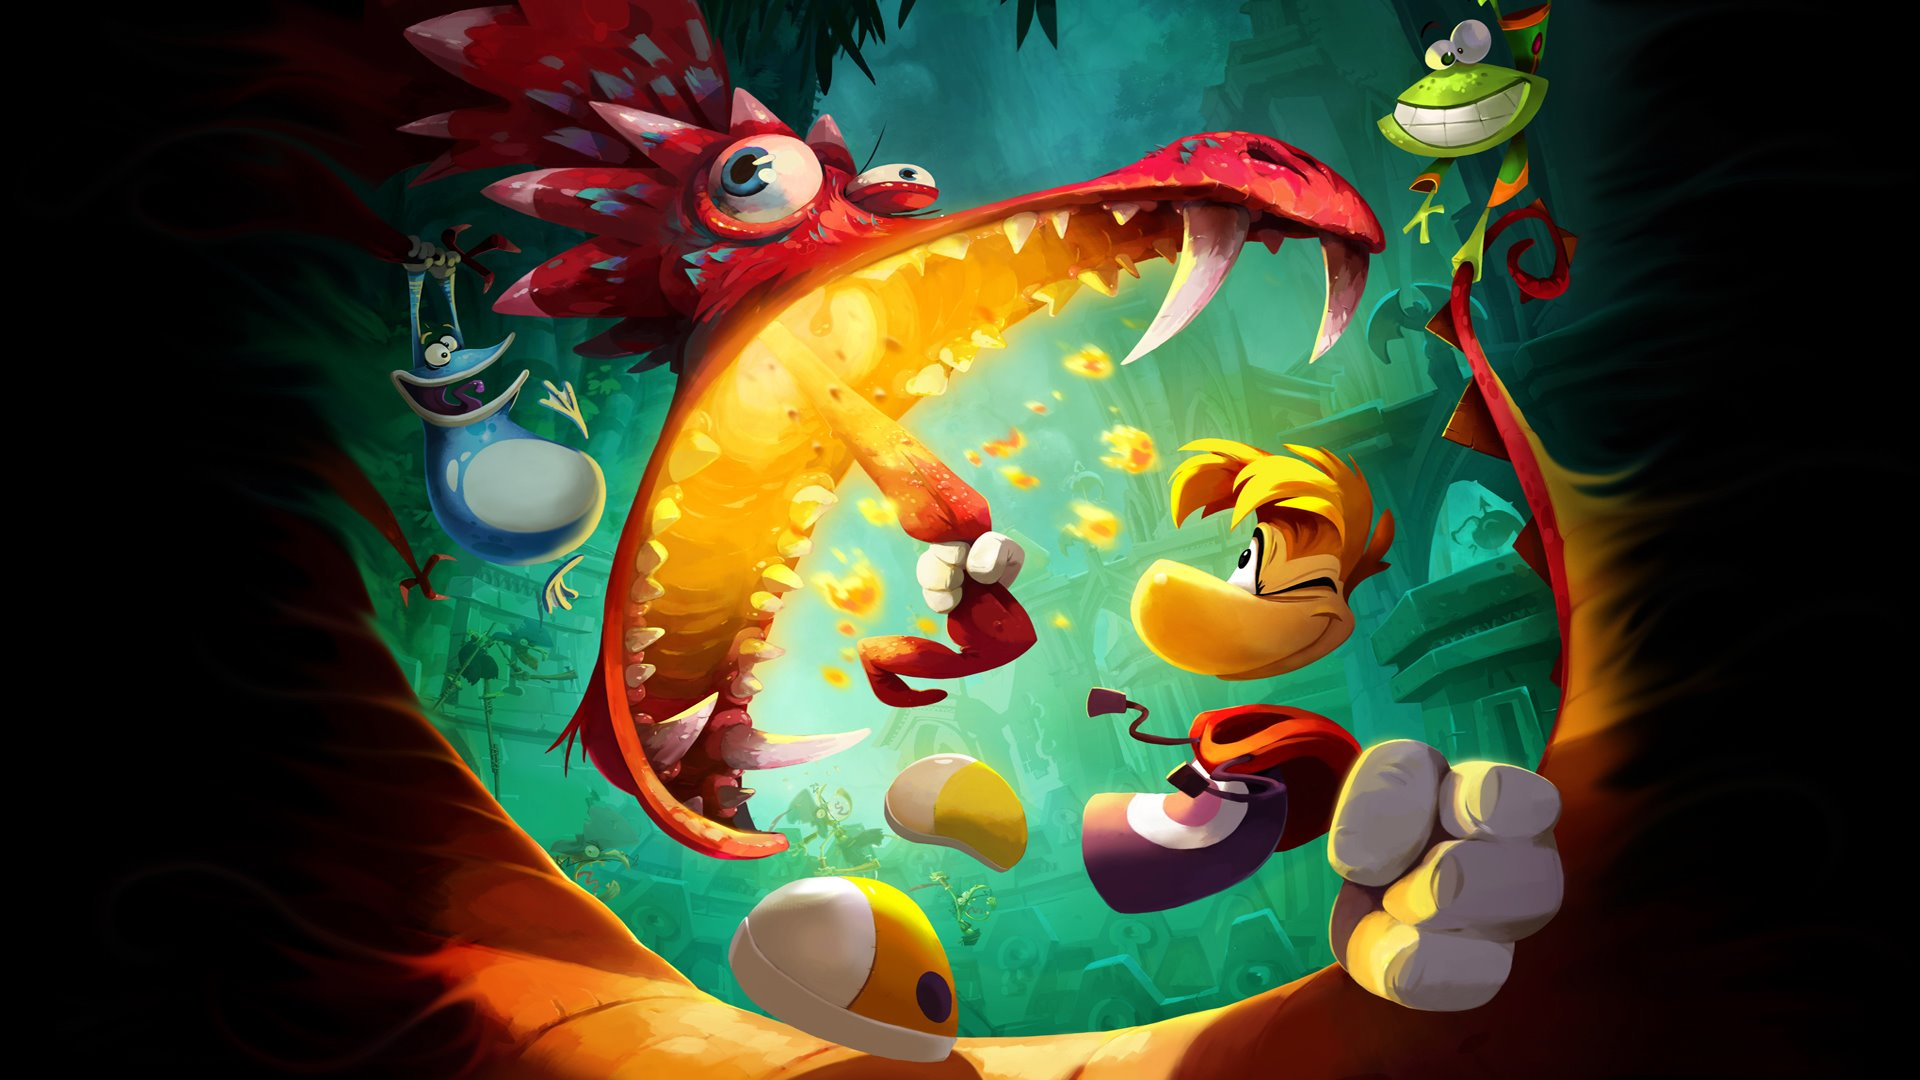 Video-Game_rayman-legends_270015